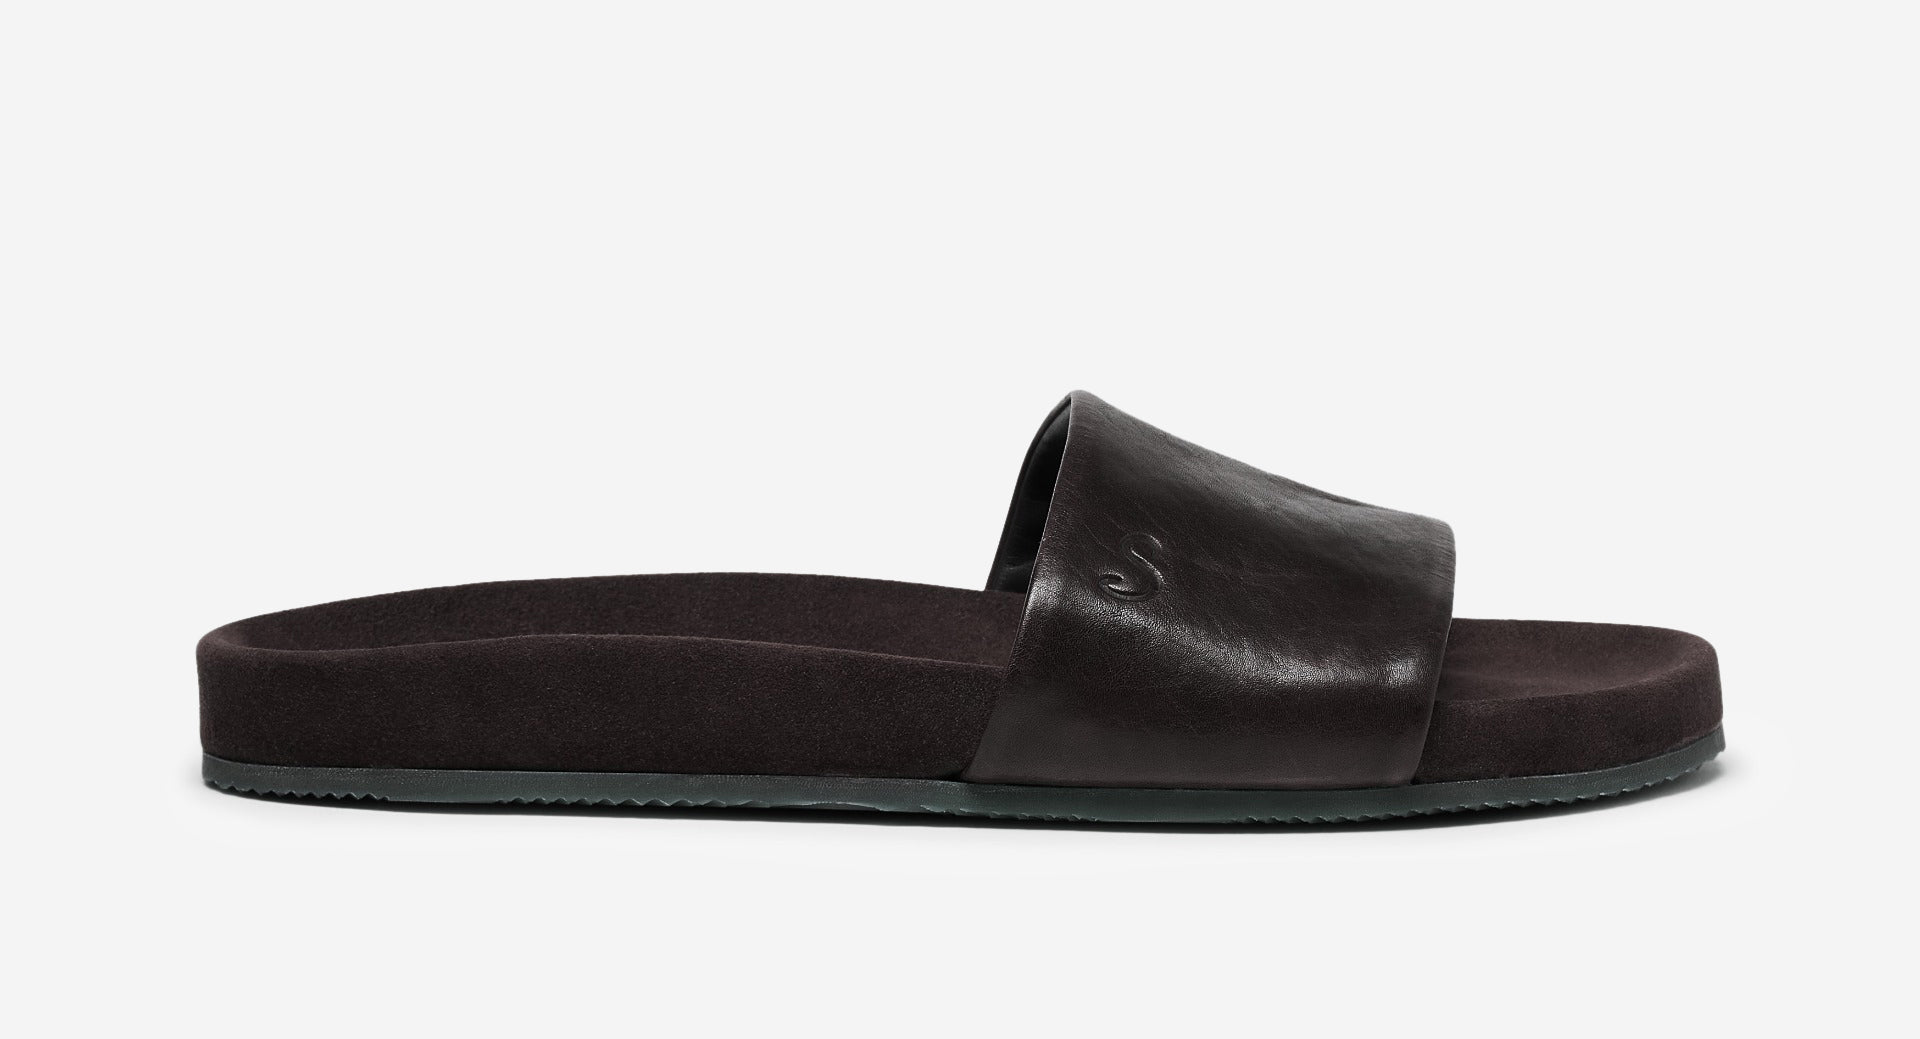 Dip Dyed Leather Pool Slide